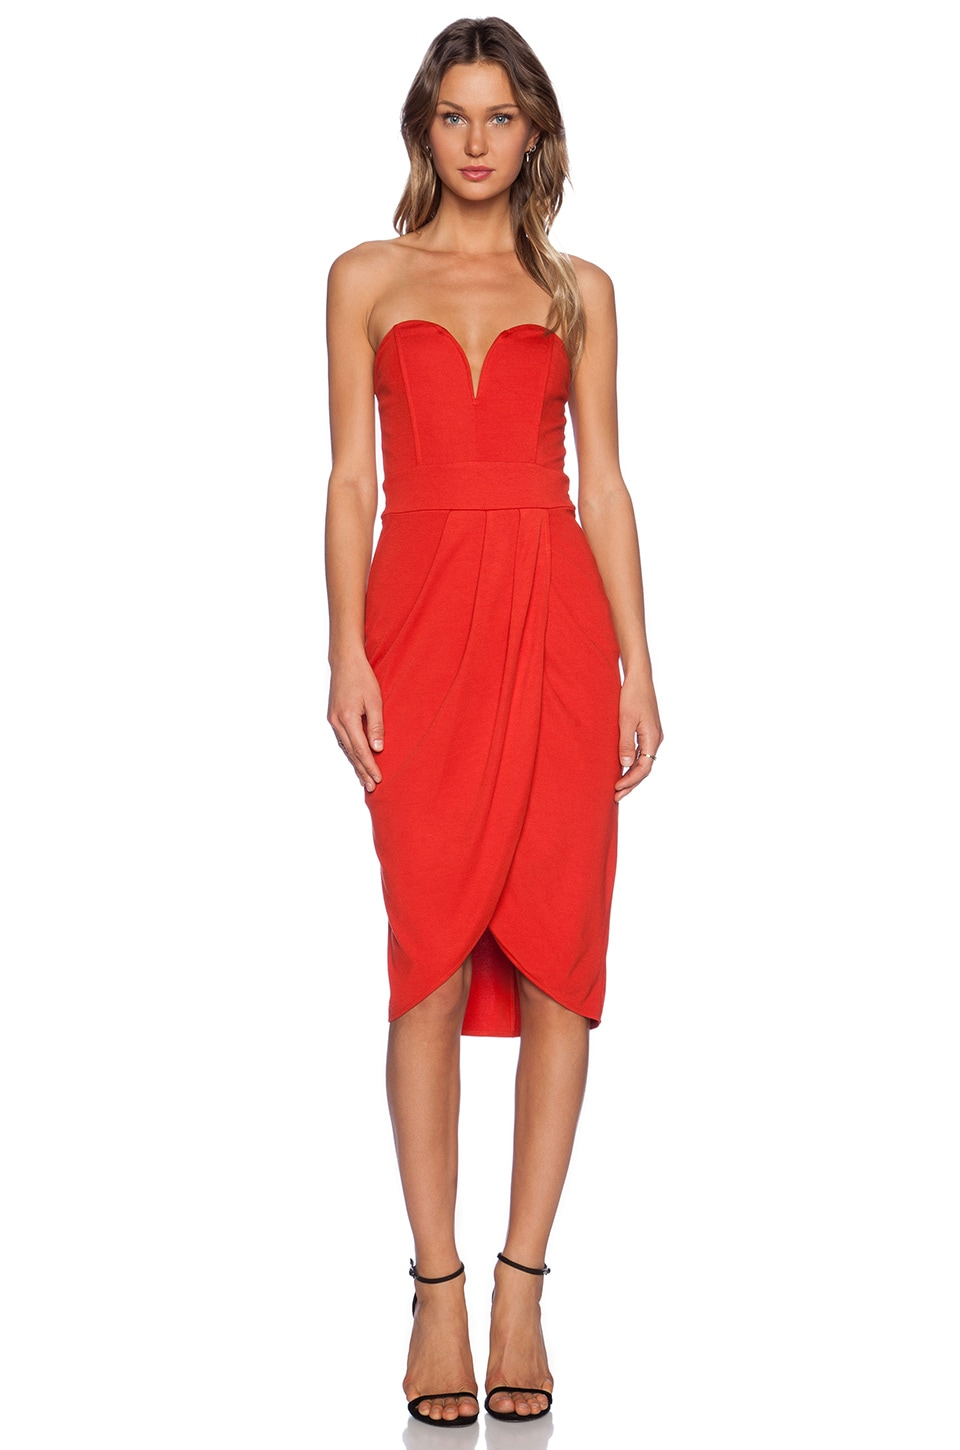 TFNC London Cara Mini Dress in Red